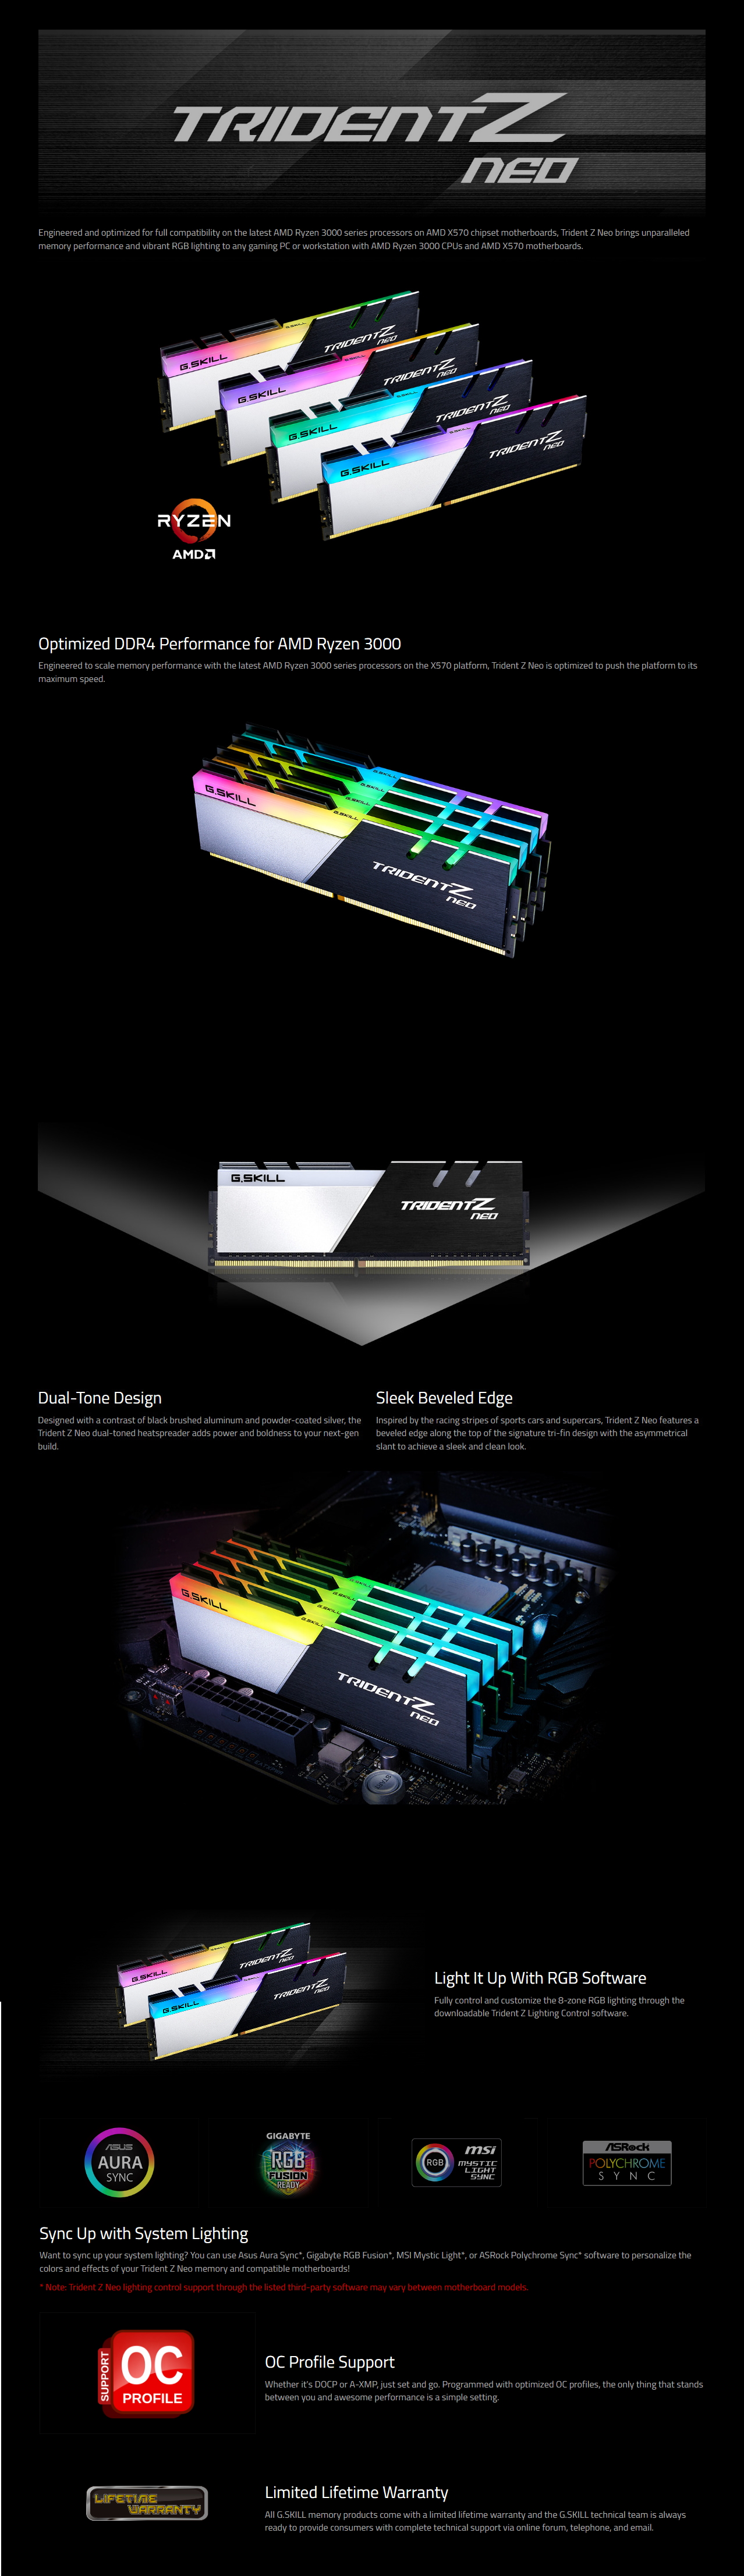 A large marketing image providing additional information about the product G.Skill 32GB Kit (2x16GB) DDR4 Trident Z RGB Neo C16 3600Mhz - Additional alt info not provided